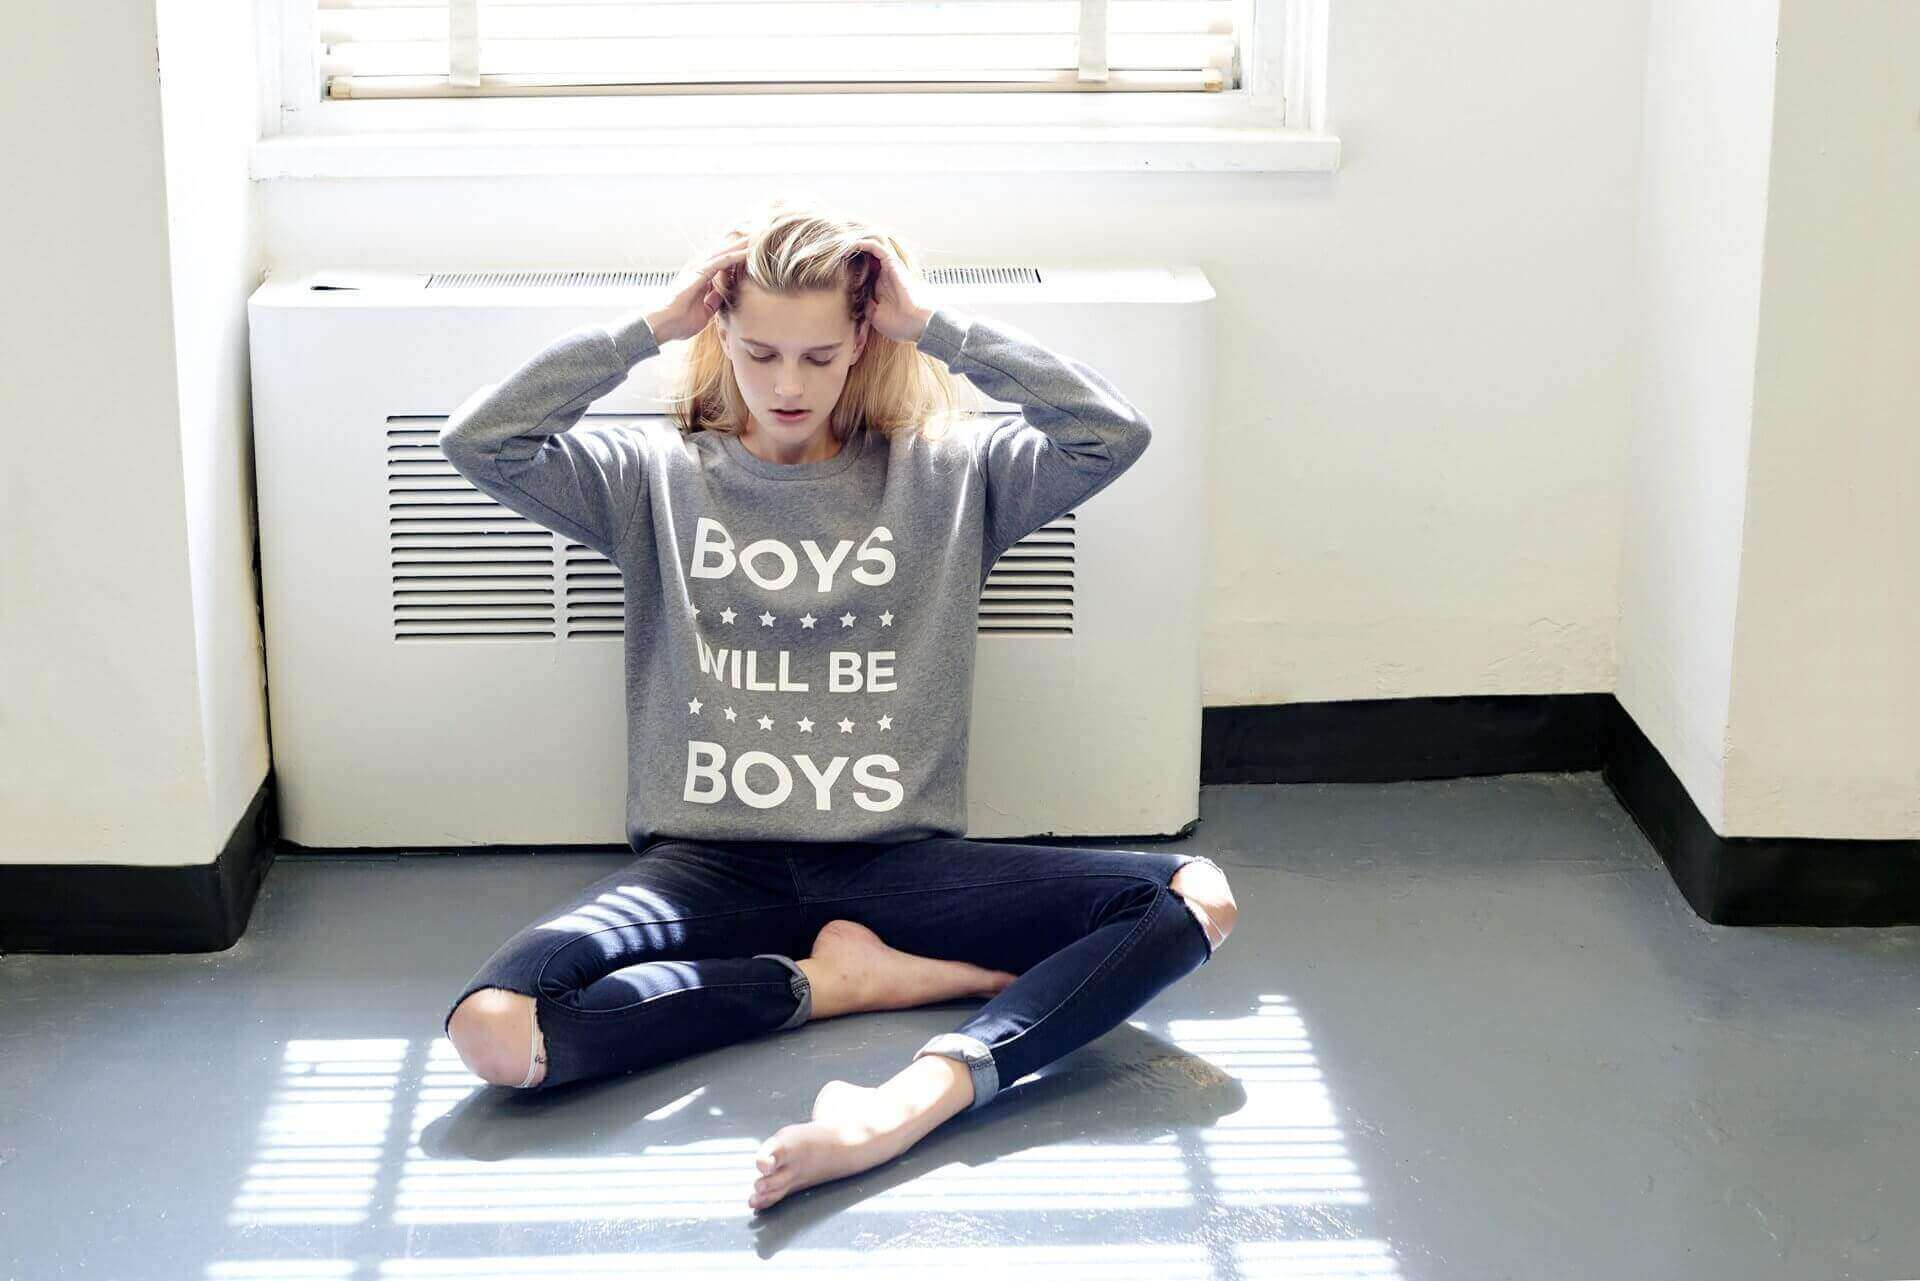 Gray 'Boys Will Be Boys' sweatshirt